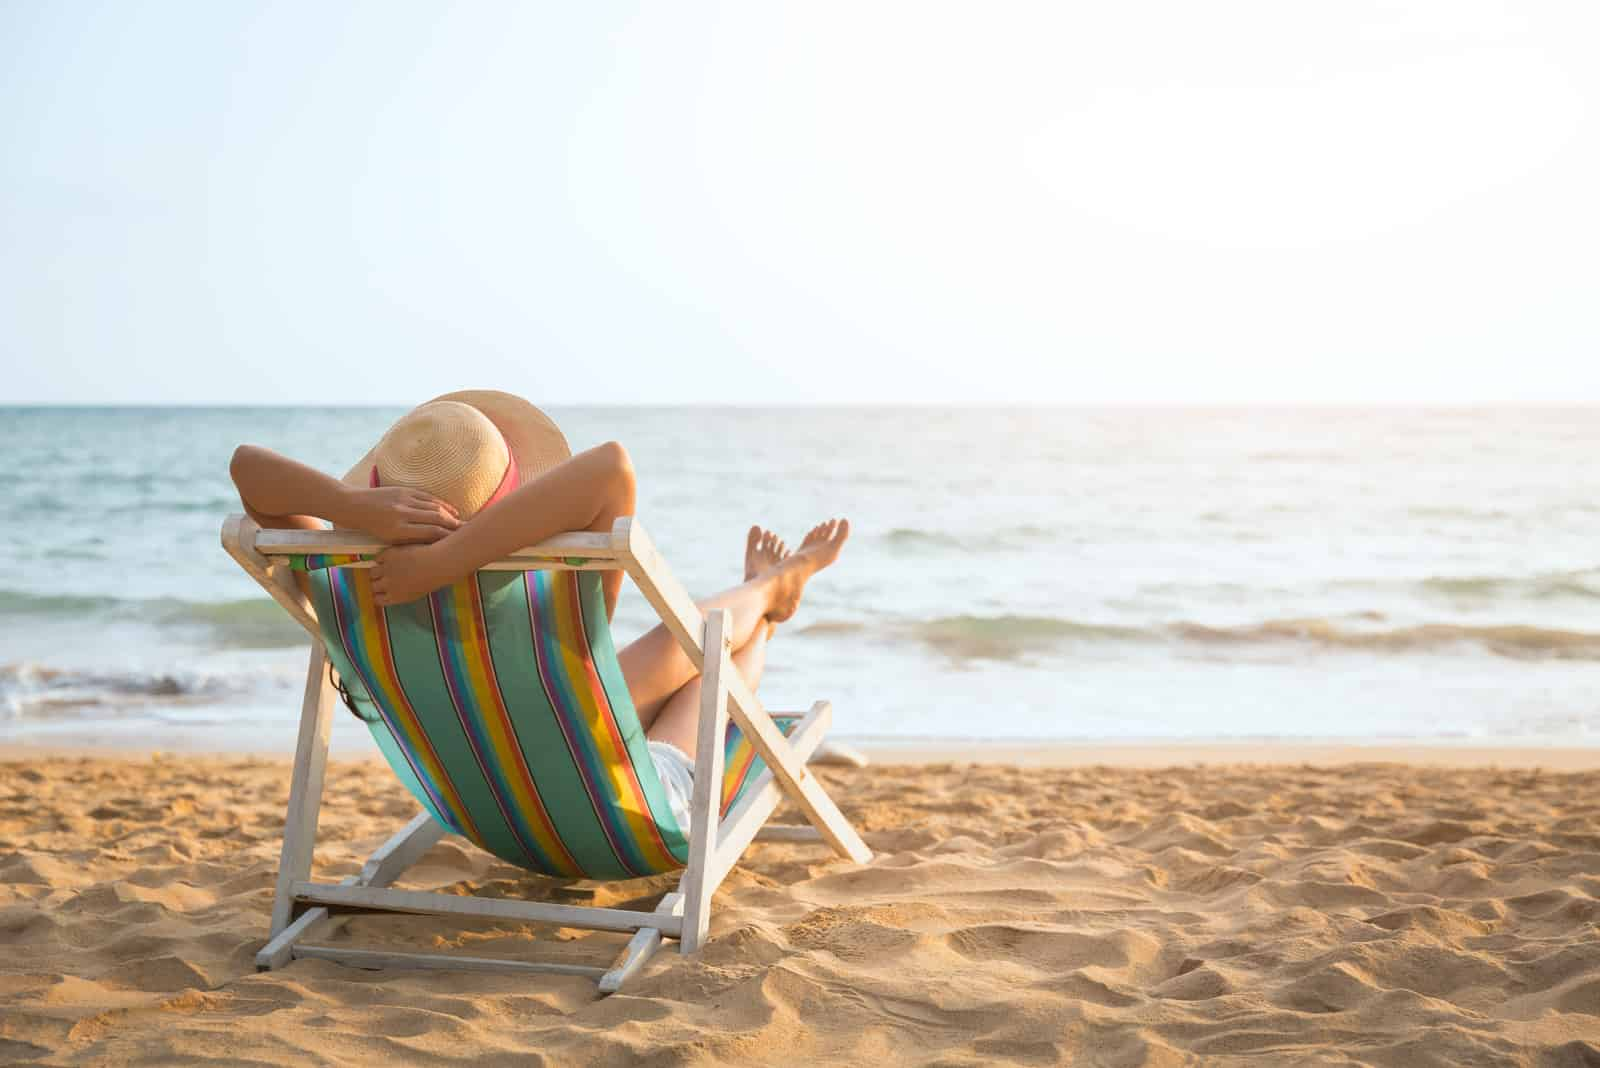 the woman is lying and the sun is on the beach